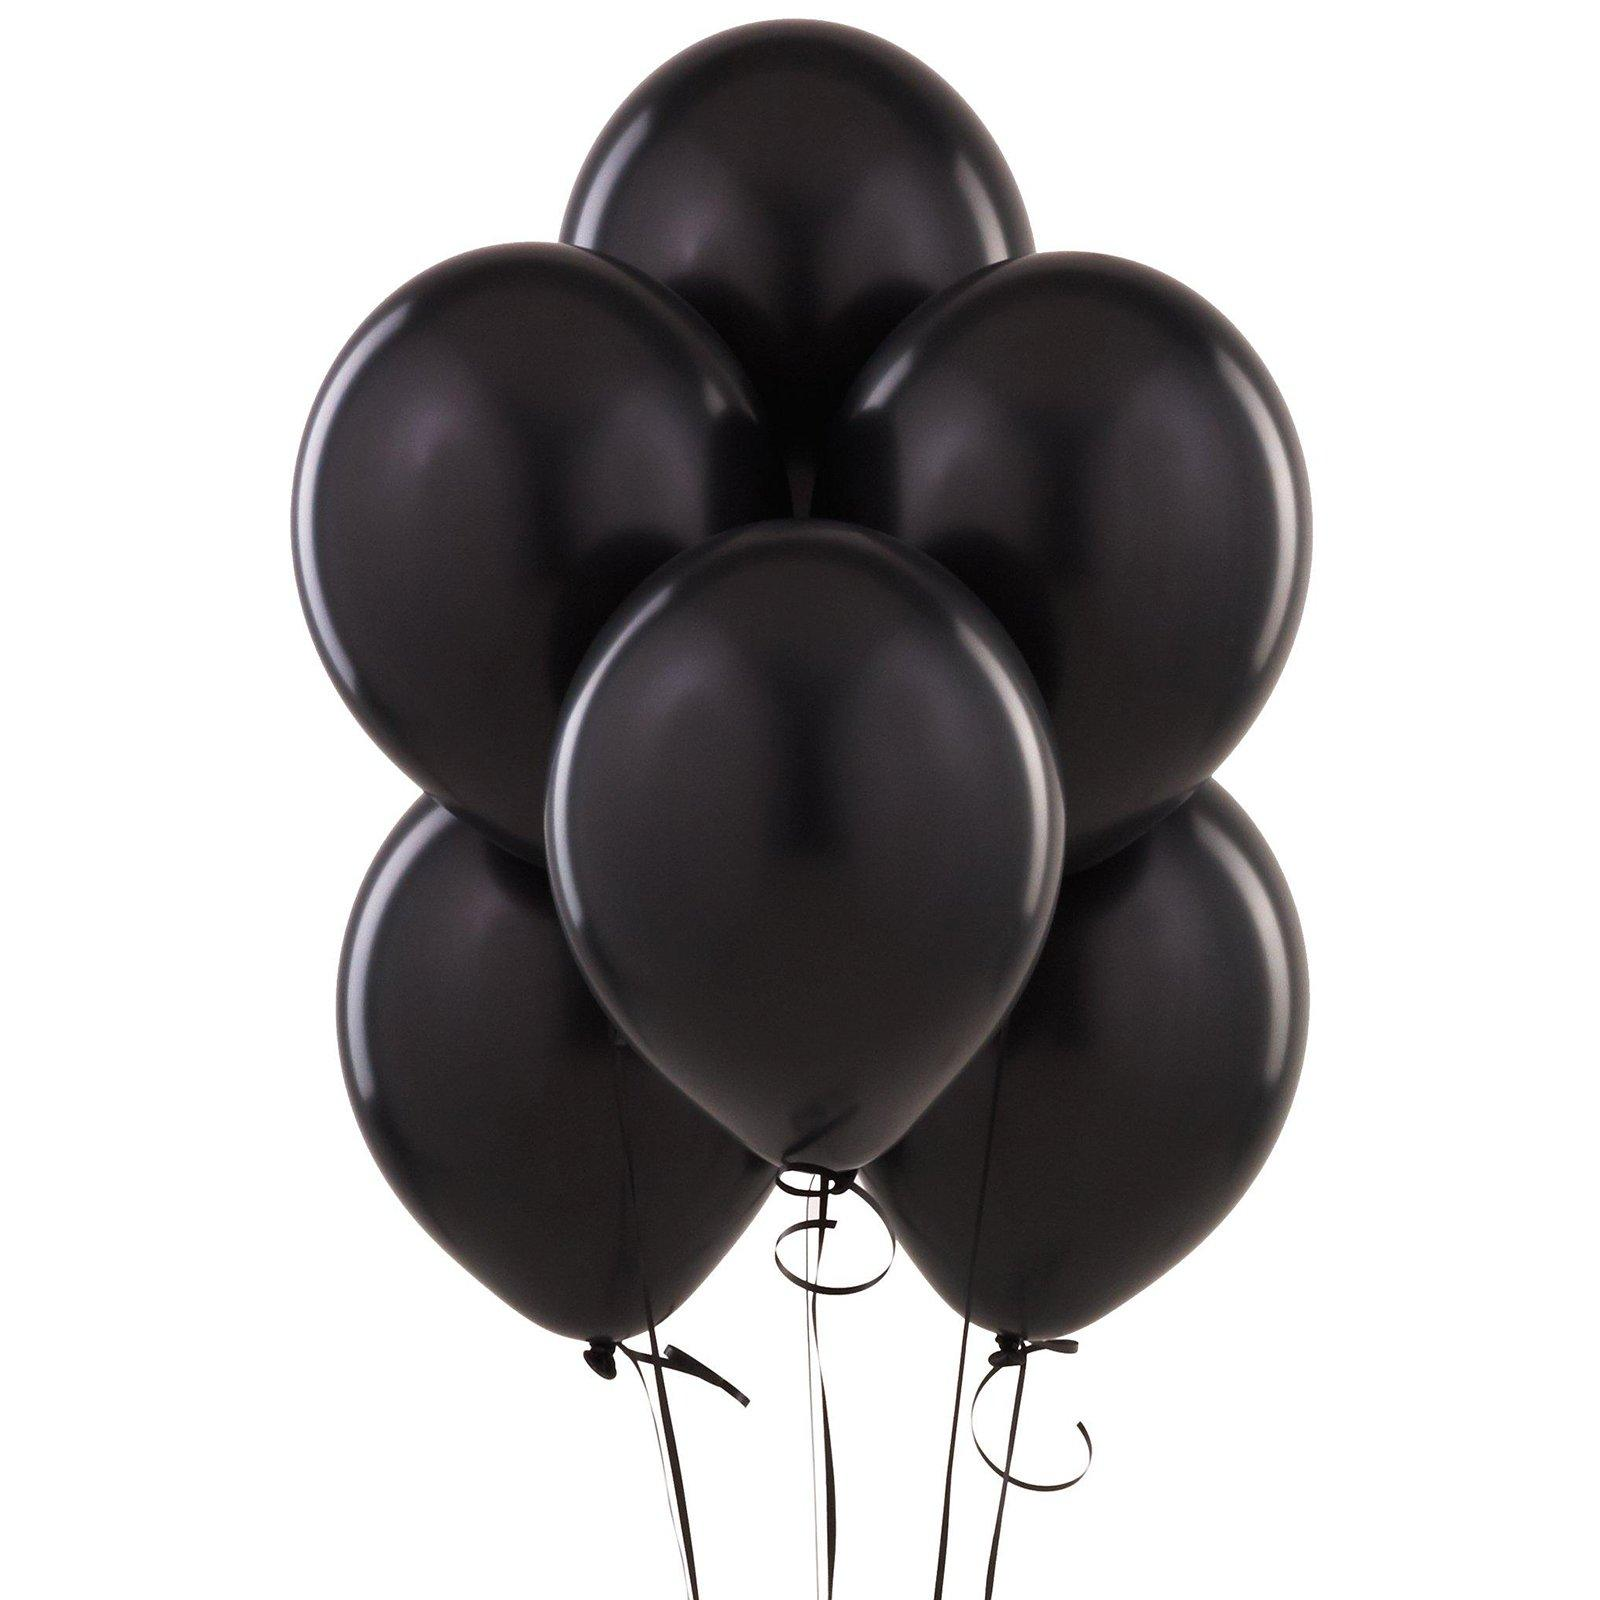 Transparent birthday black balloon clipart graphic black and white stock Balloons Bunch PNG Black And White Transparent Balloons ... graphic black and white stock